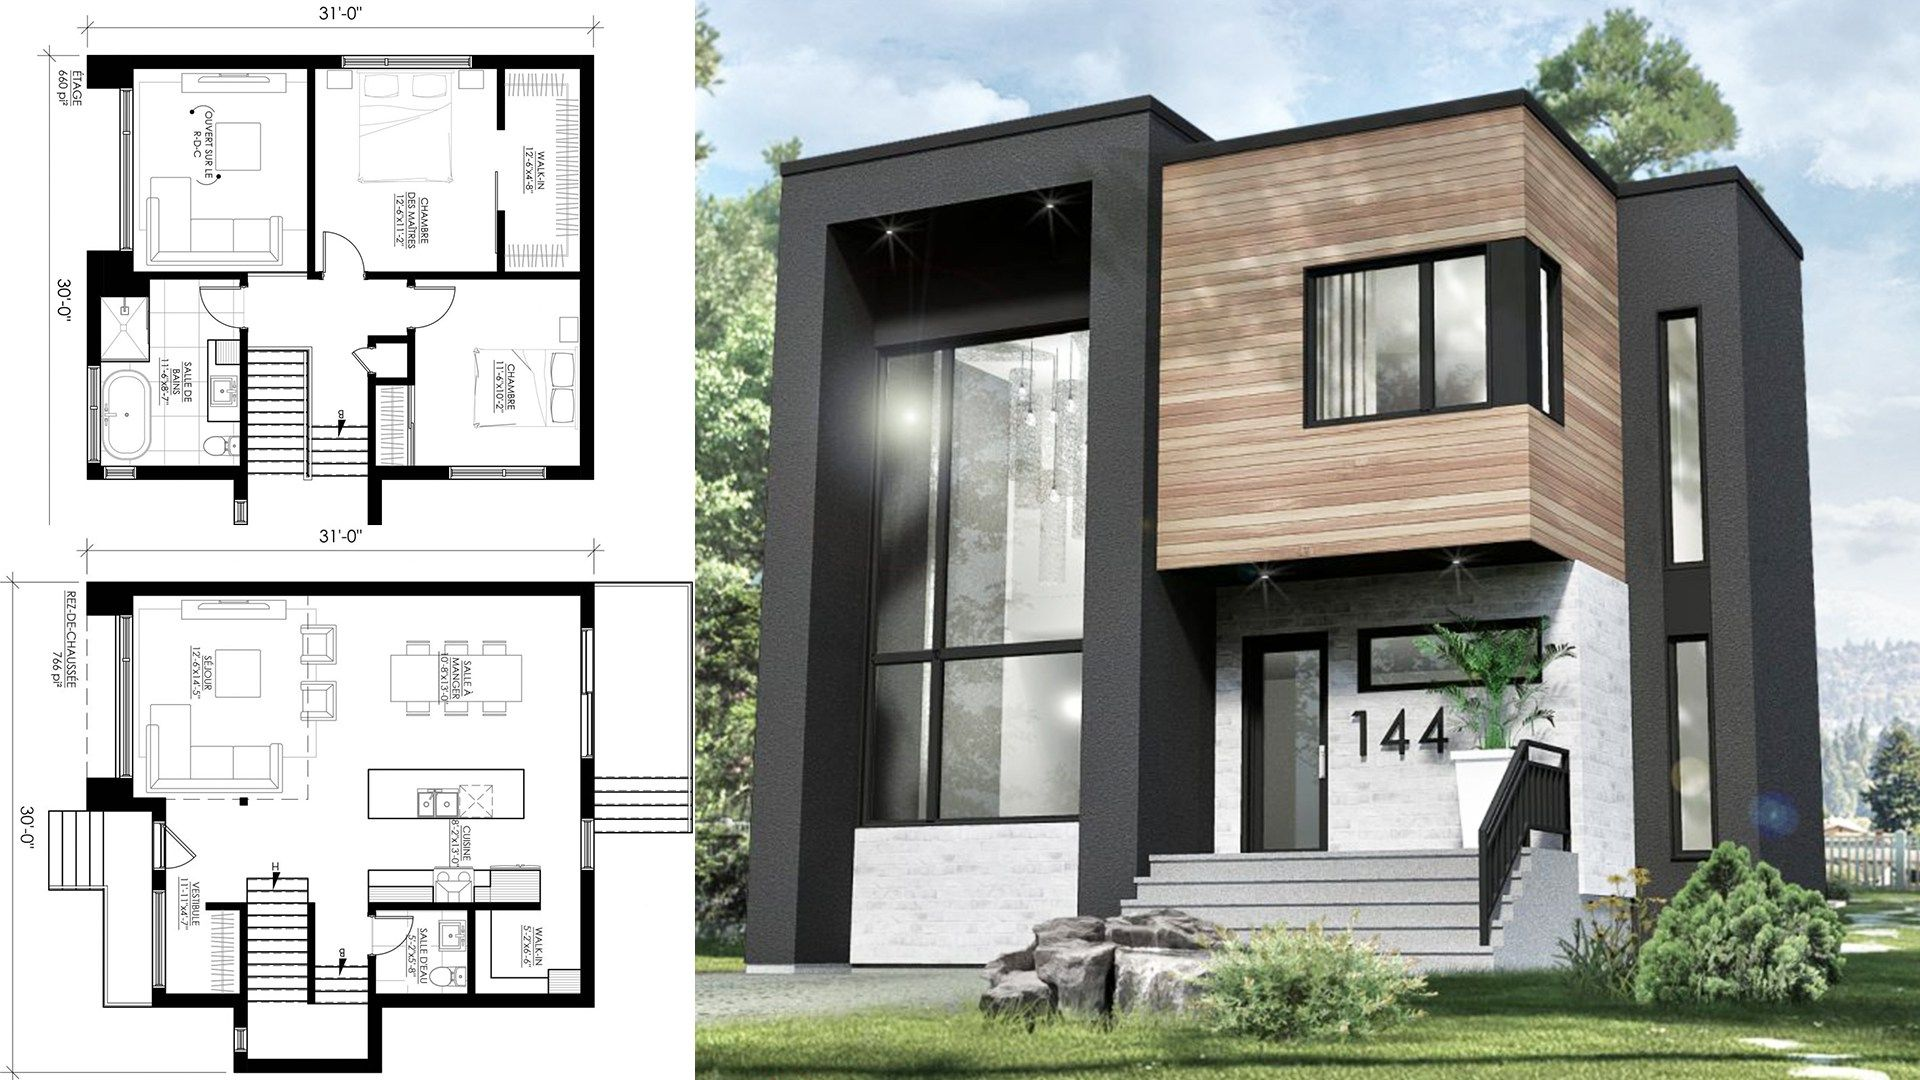 Small Modern House 30x31 With Interior Small Modern Home